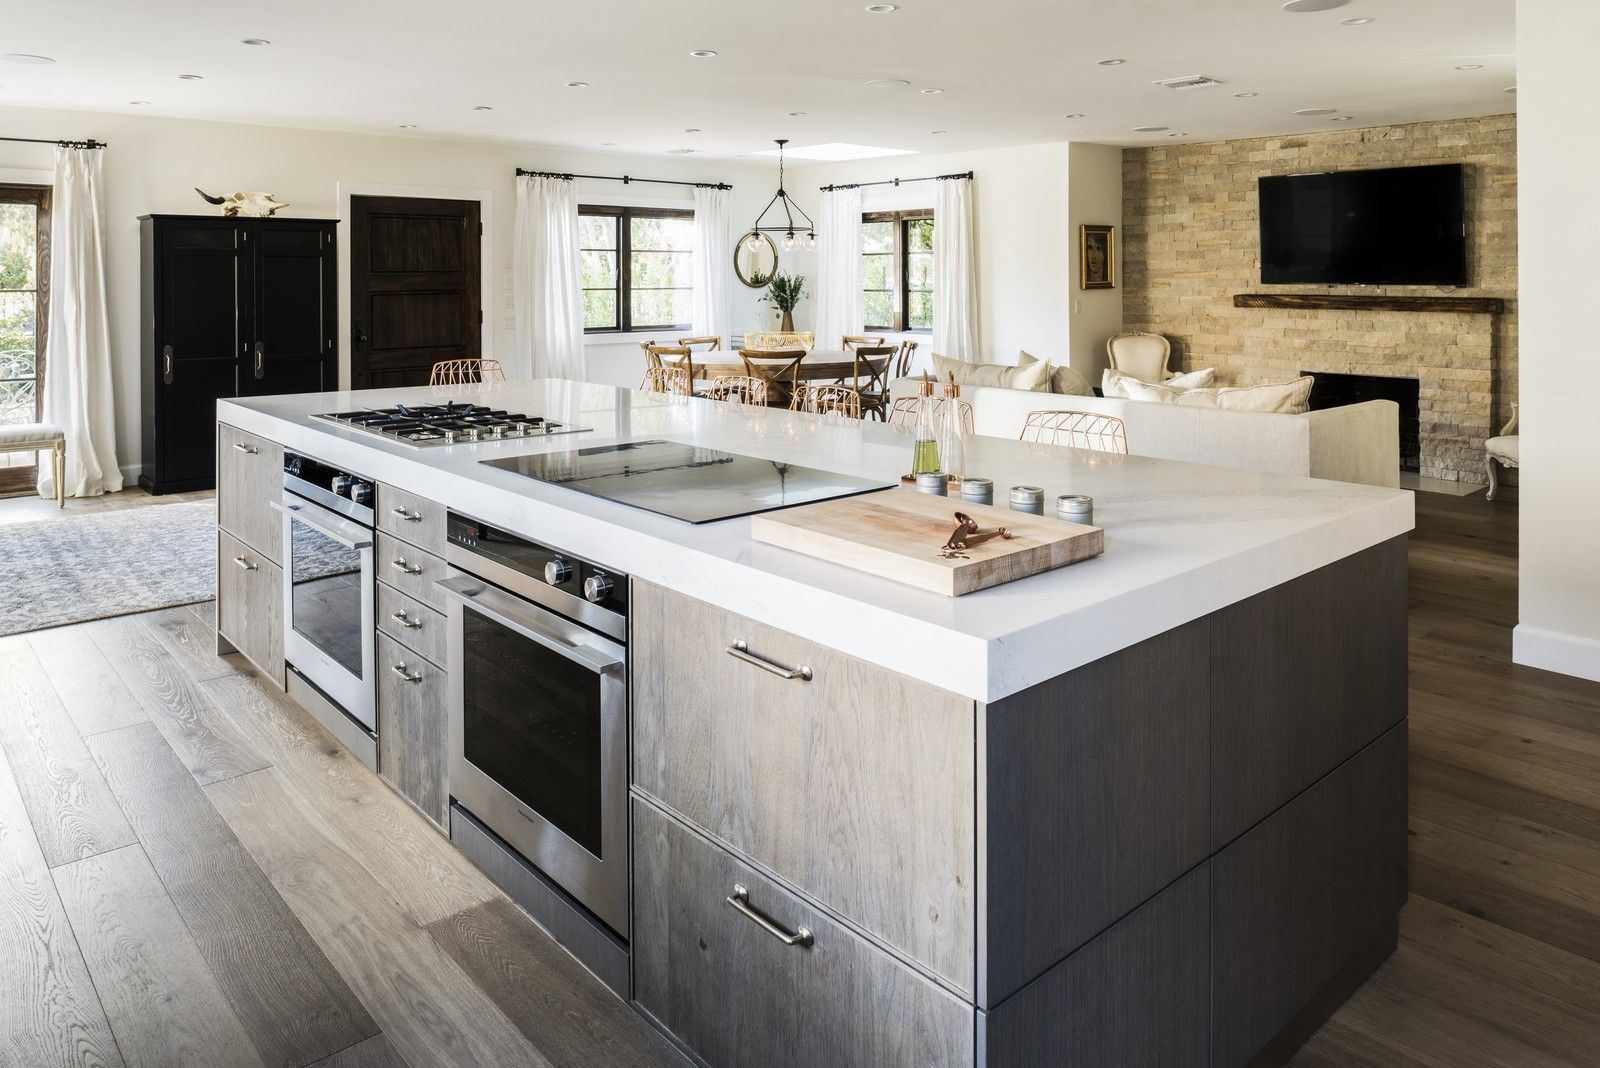 Chef Ludo Lefebvre's Modern Kitchen With Rustic Ro